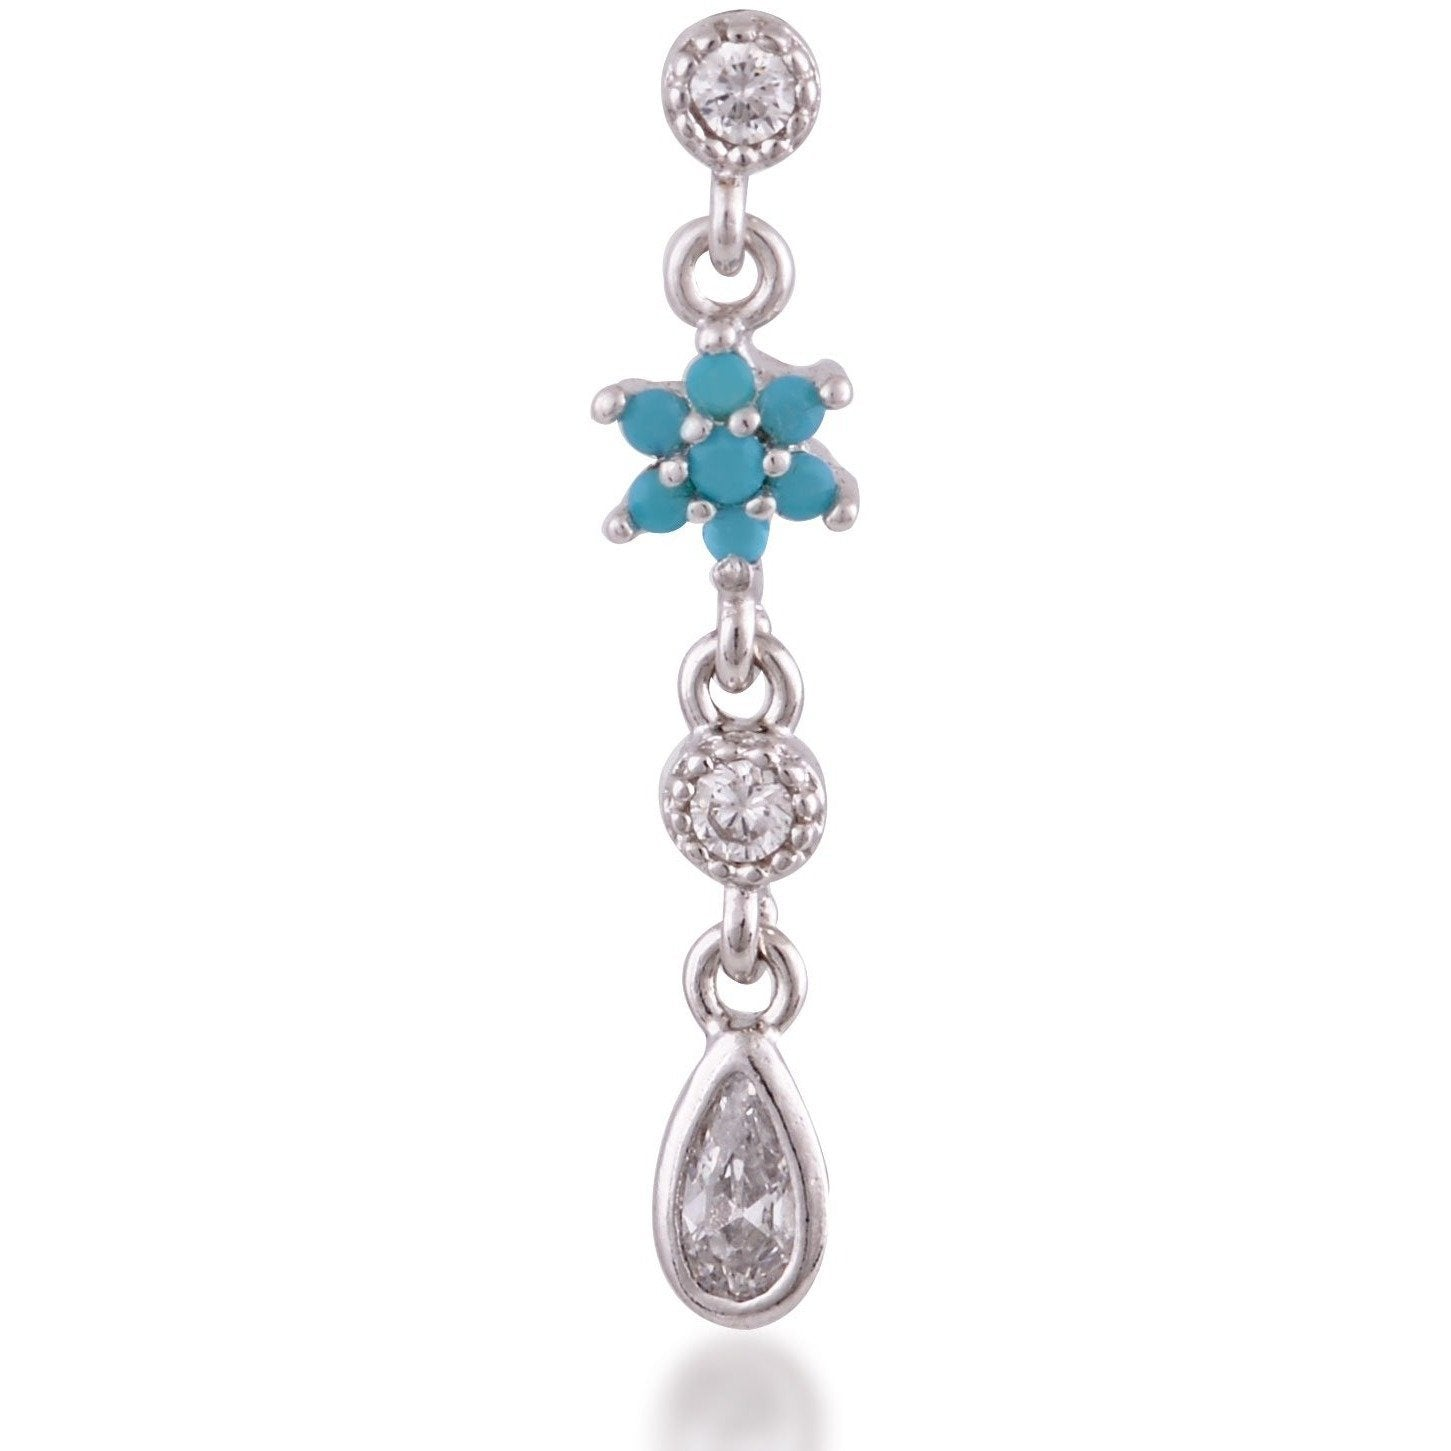 Teardrop flower sterling silver turquoise single earring - GALLERIA ARMADORO